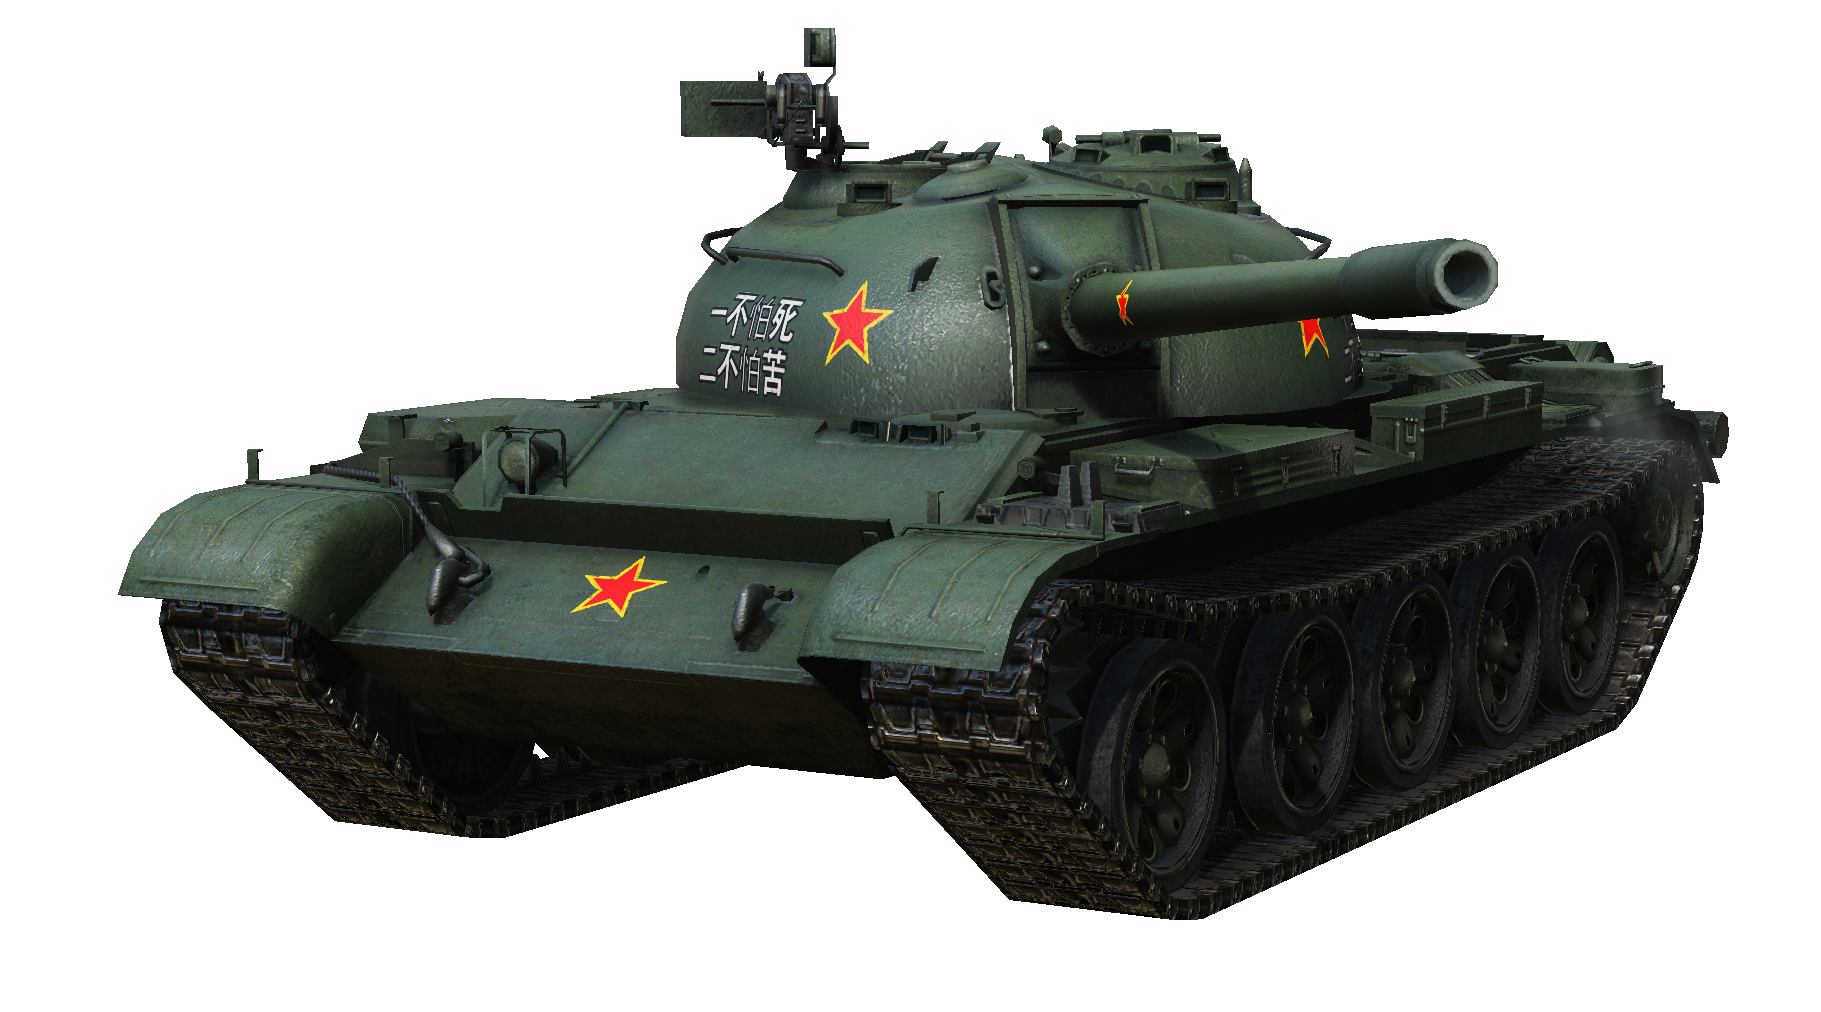 Tank PNG Images Transparent Free Download.